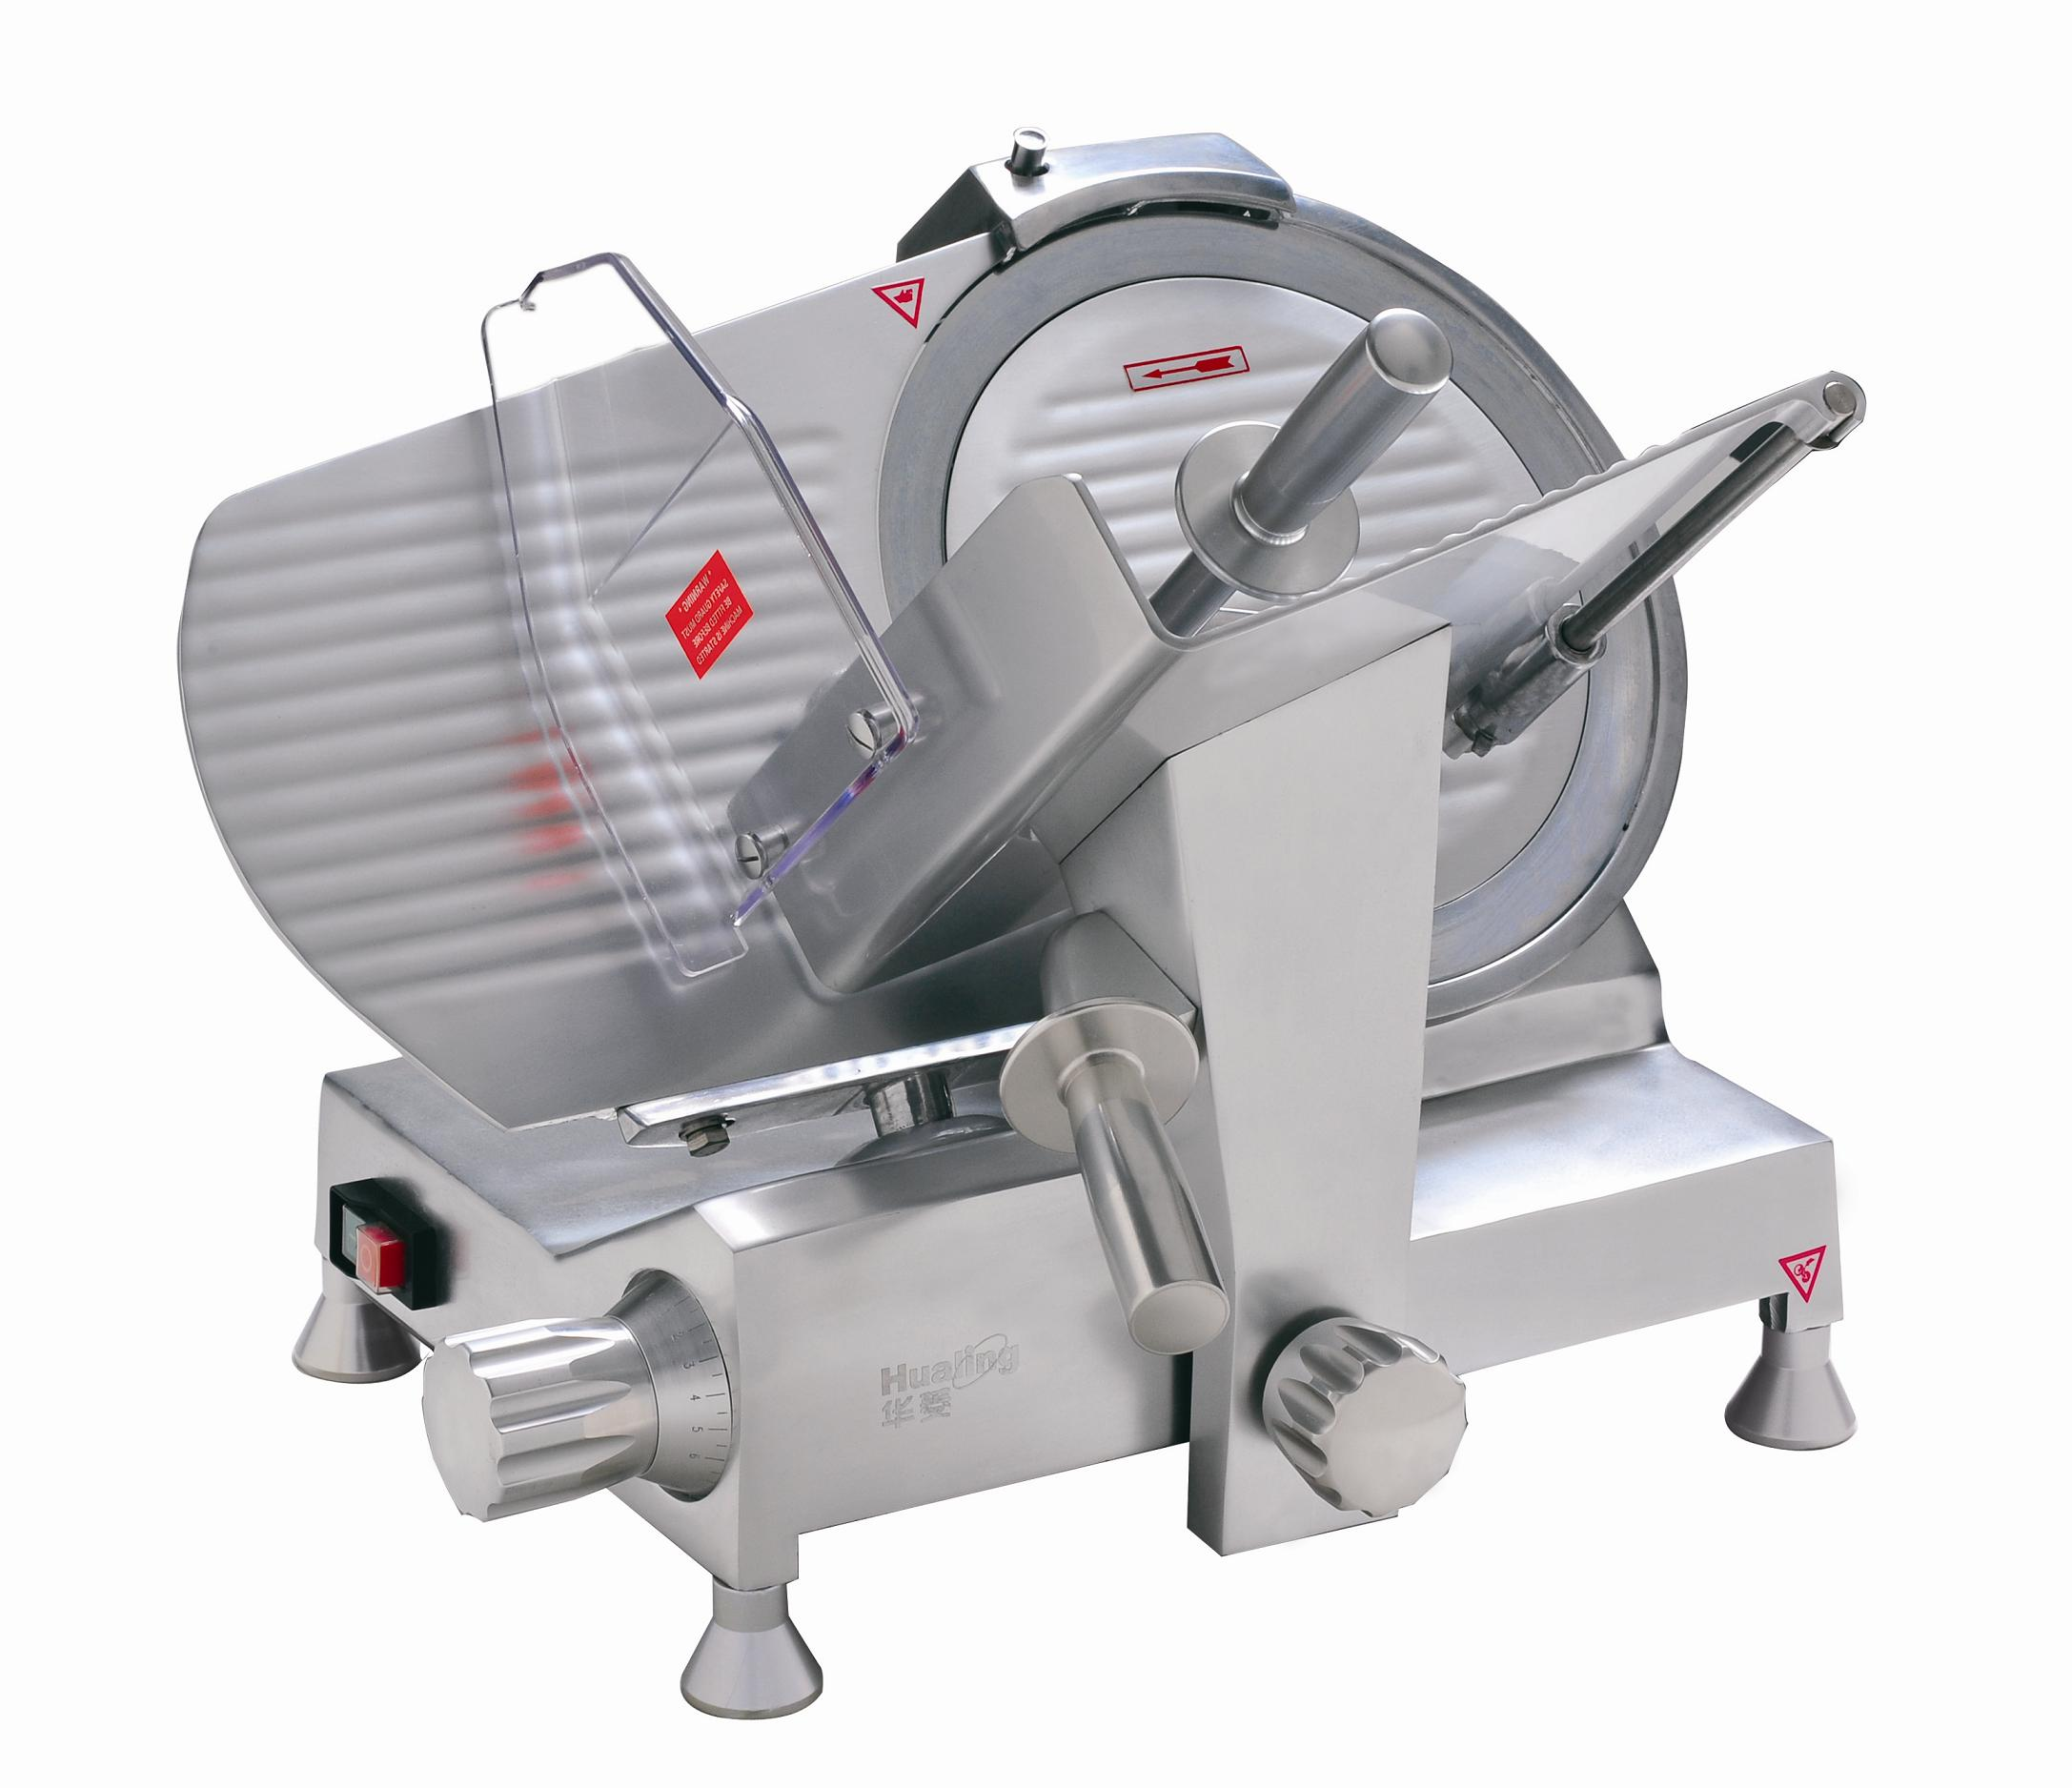 Eurodib USA HBS-300L meat slicers